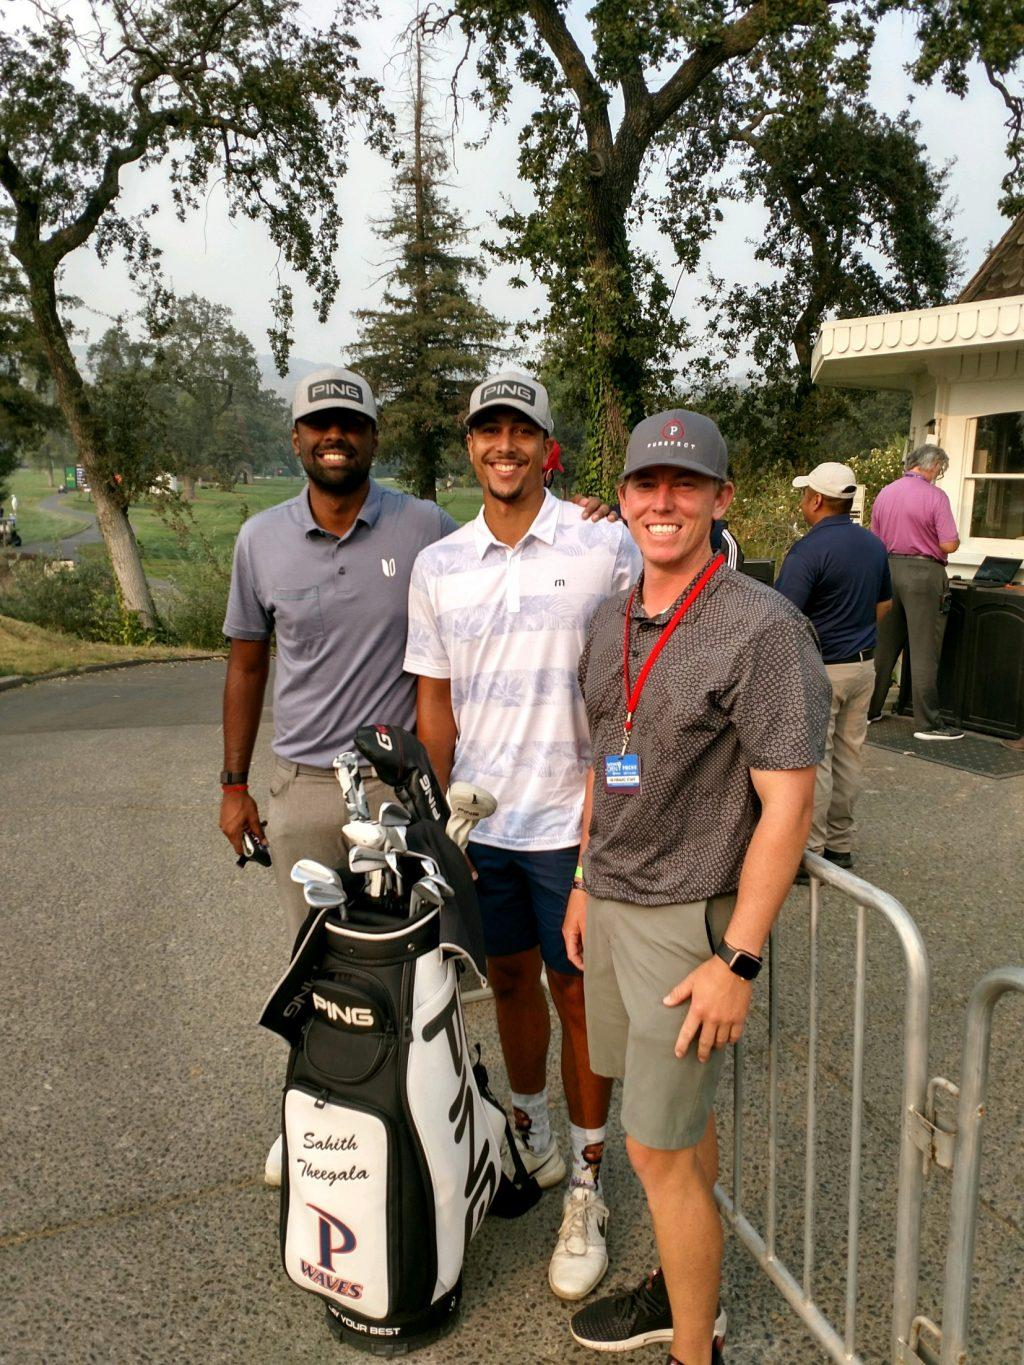 Theegala hangs out with his caddie, Aaron, and friend, Zack, at the Silverado Country Club in Napa Valley, CA. The golfer traveled 400 miles from his home in Chino, CA, to compete at this tournament.